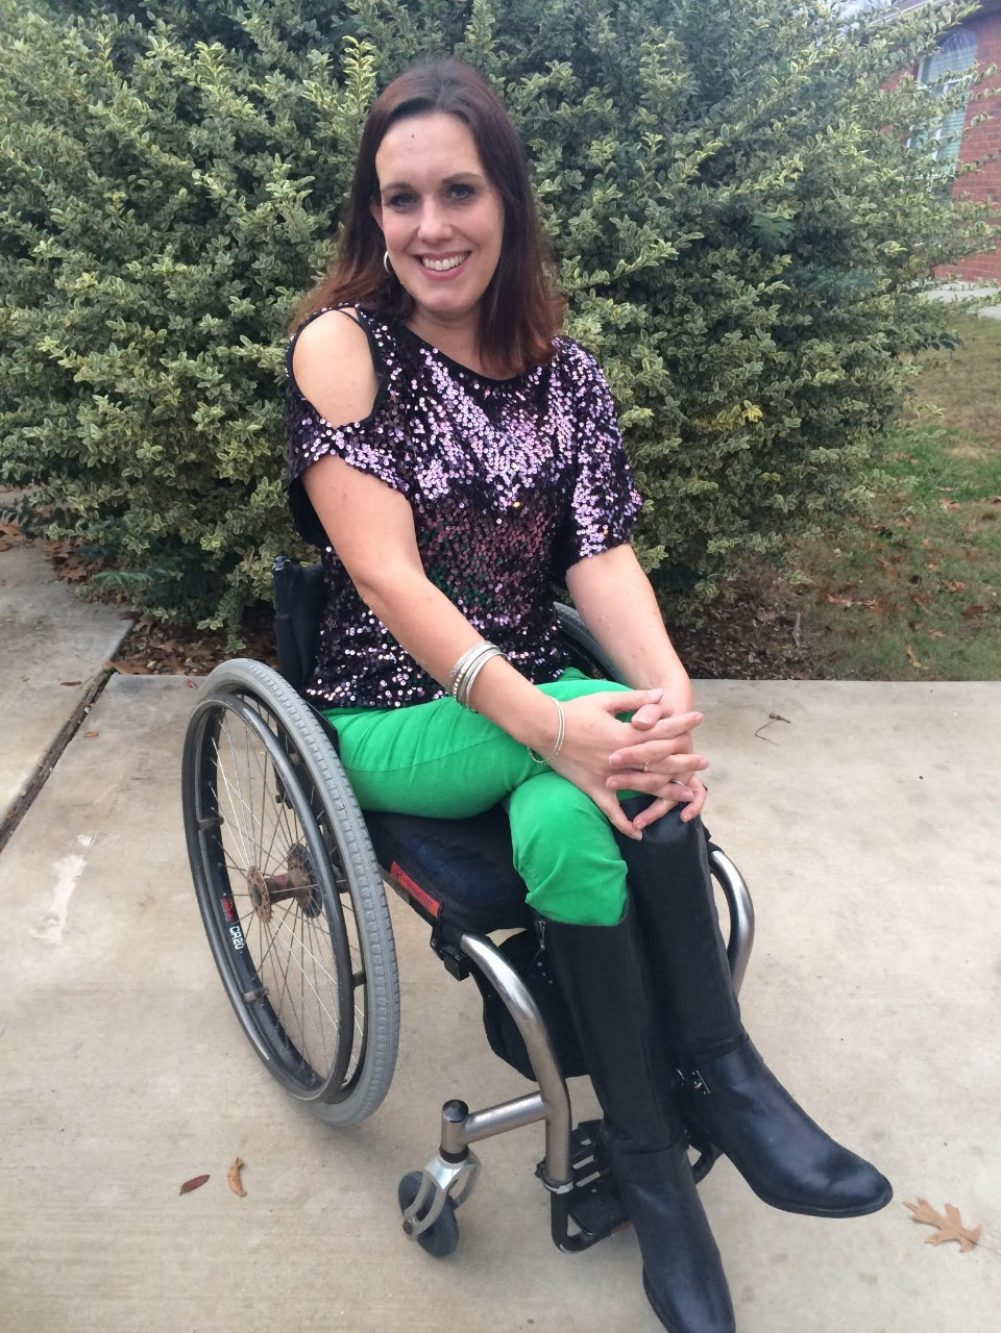 Priscilla Hedlin is wearing a sparkly purple shirt, green pants and black leather boots